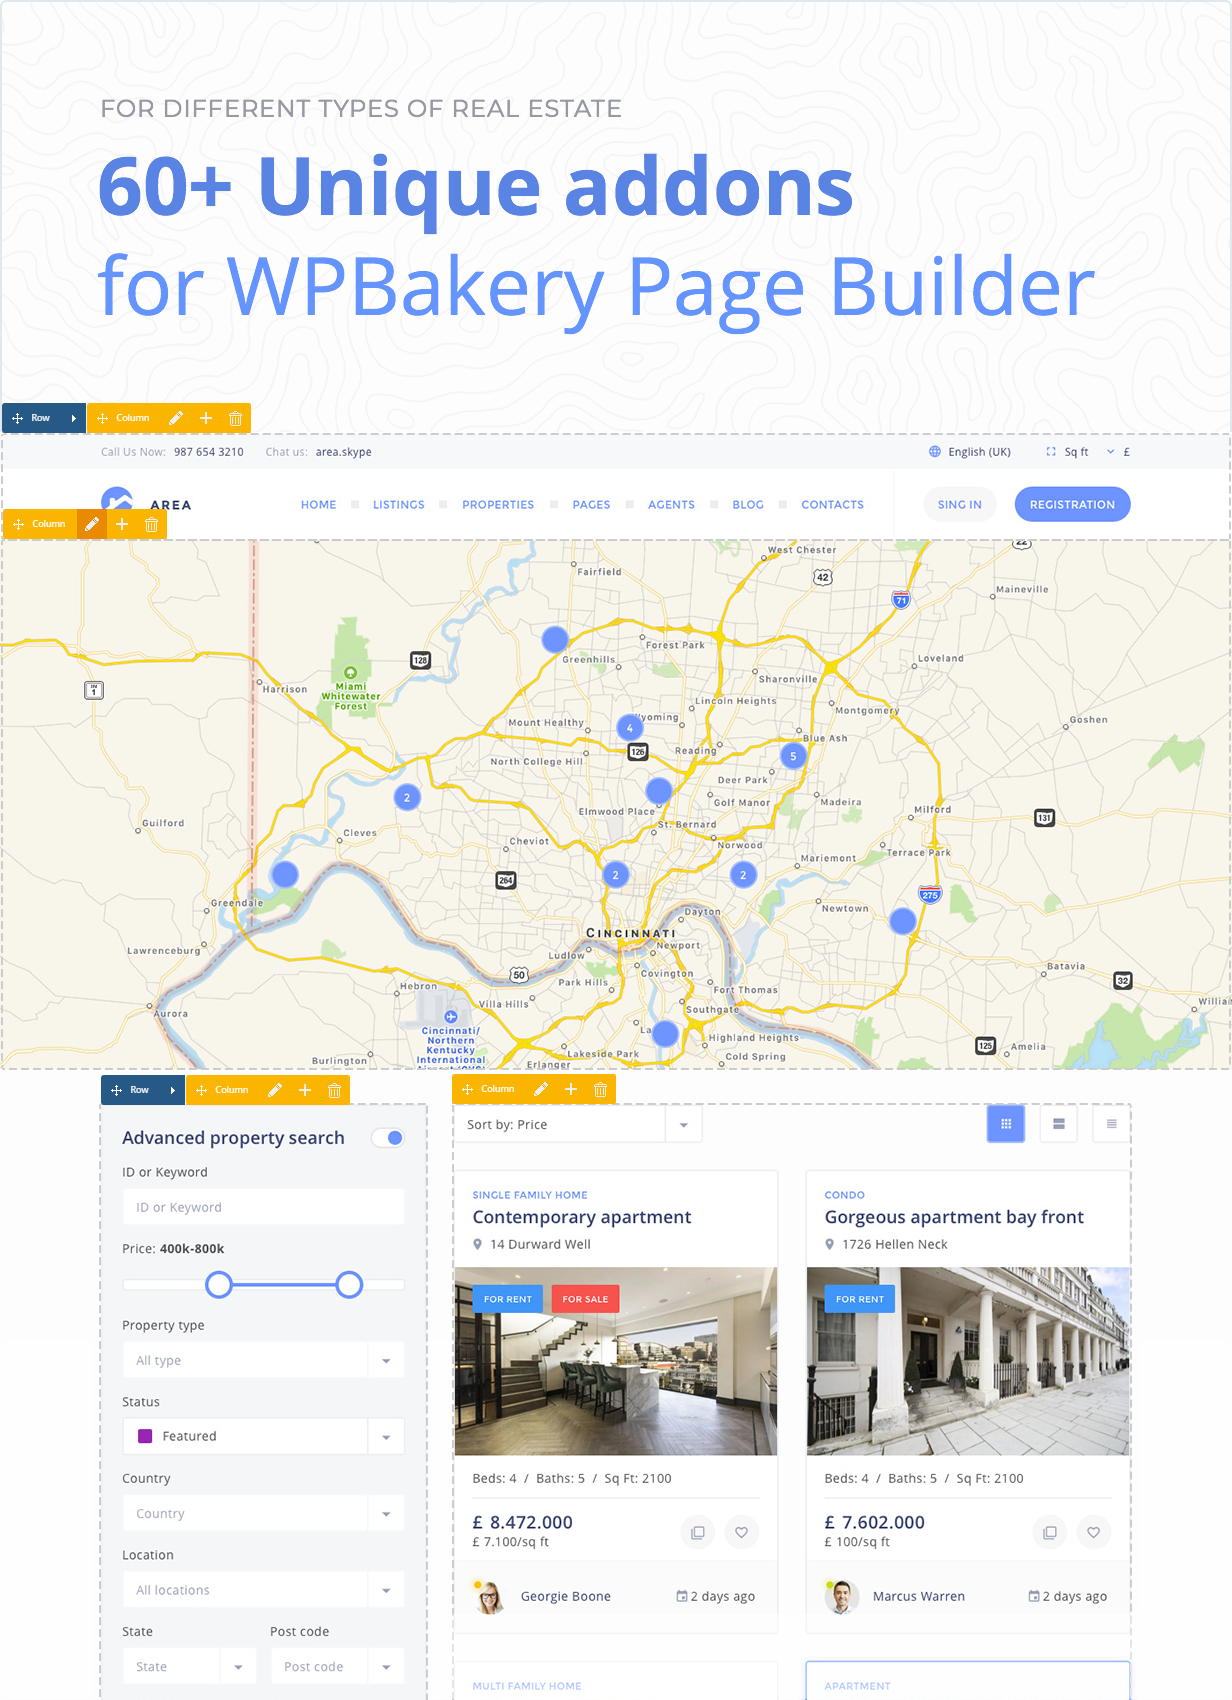 +60 Unique addons for WPbakery Page Builder